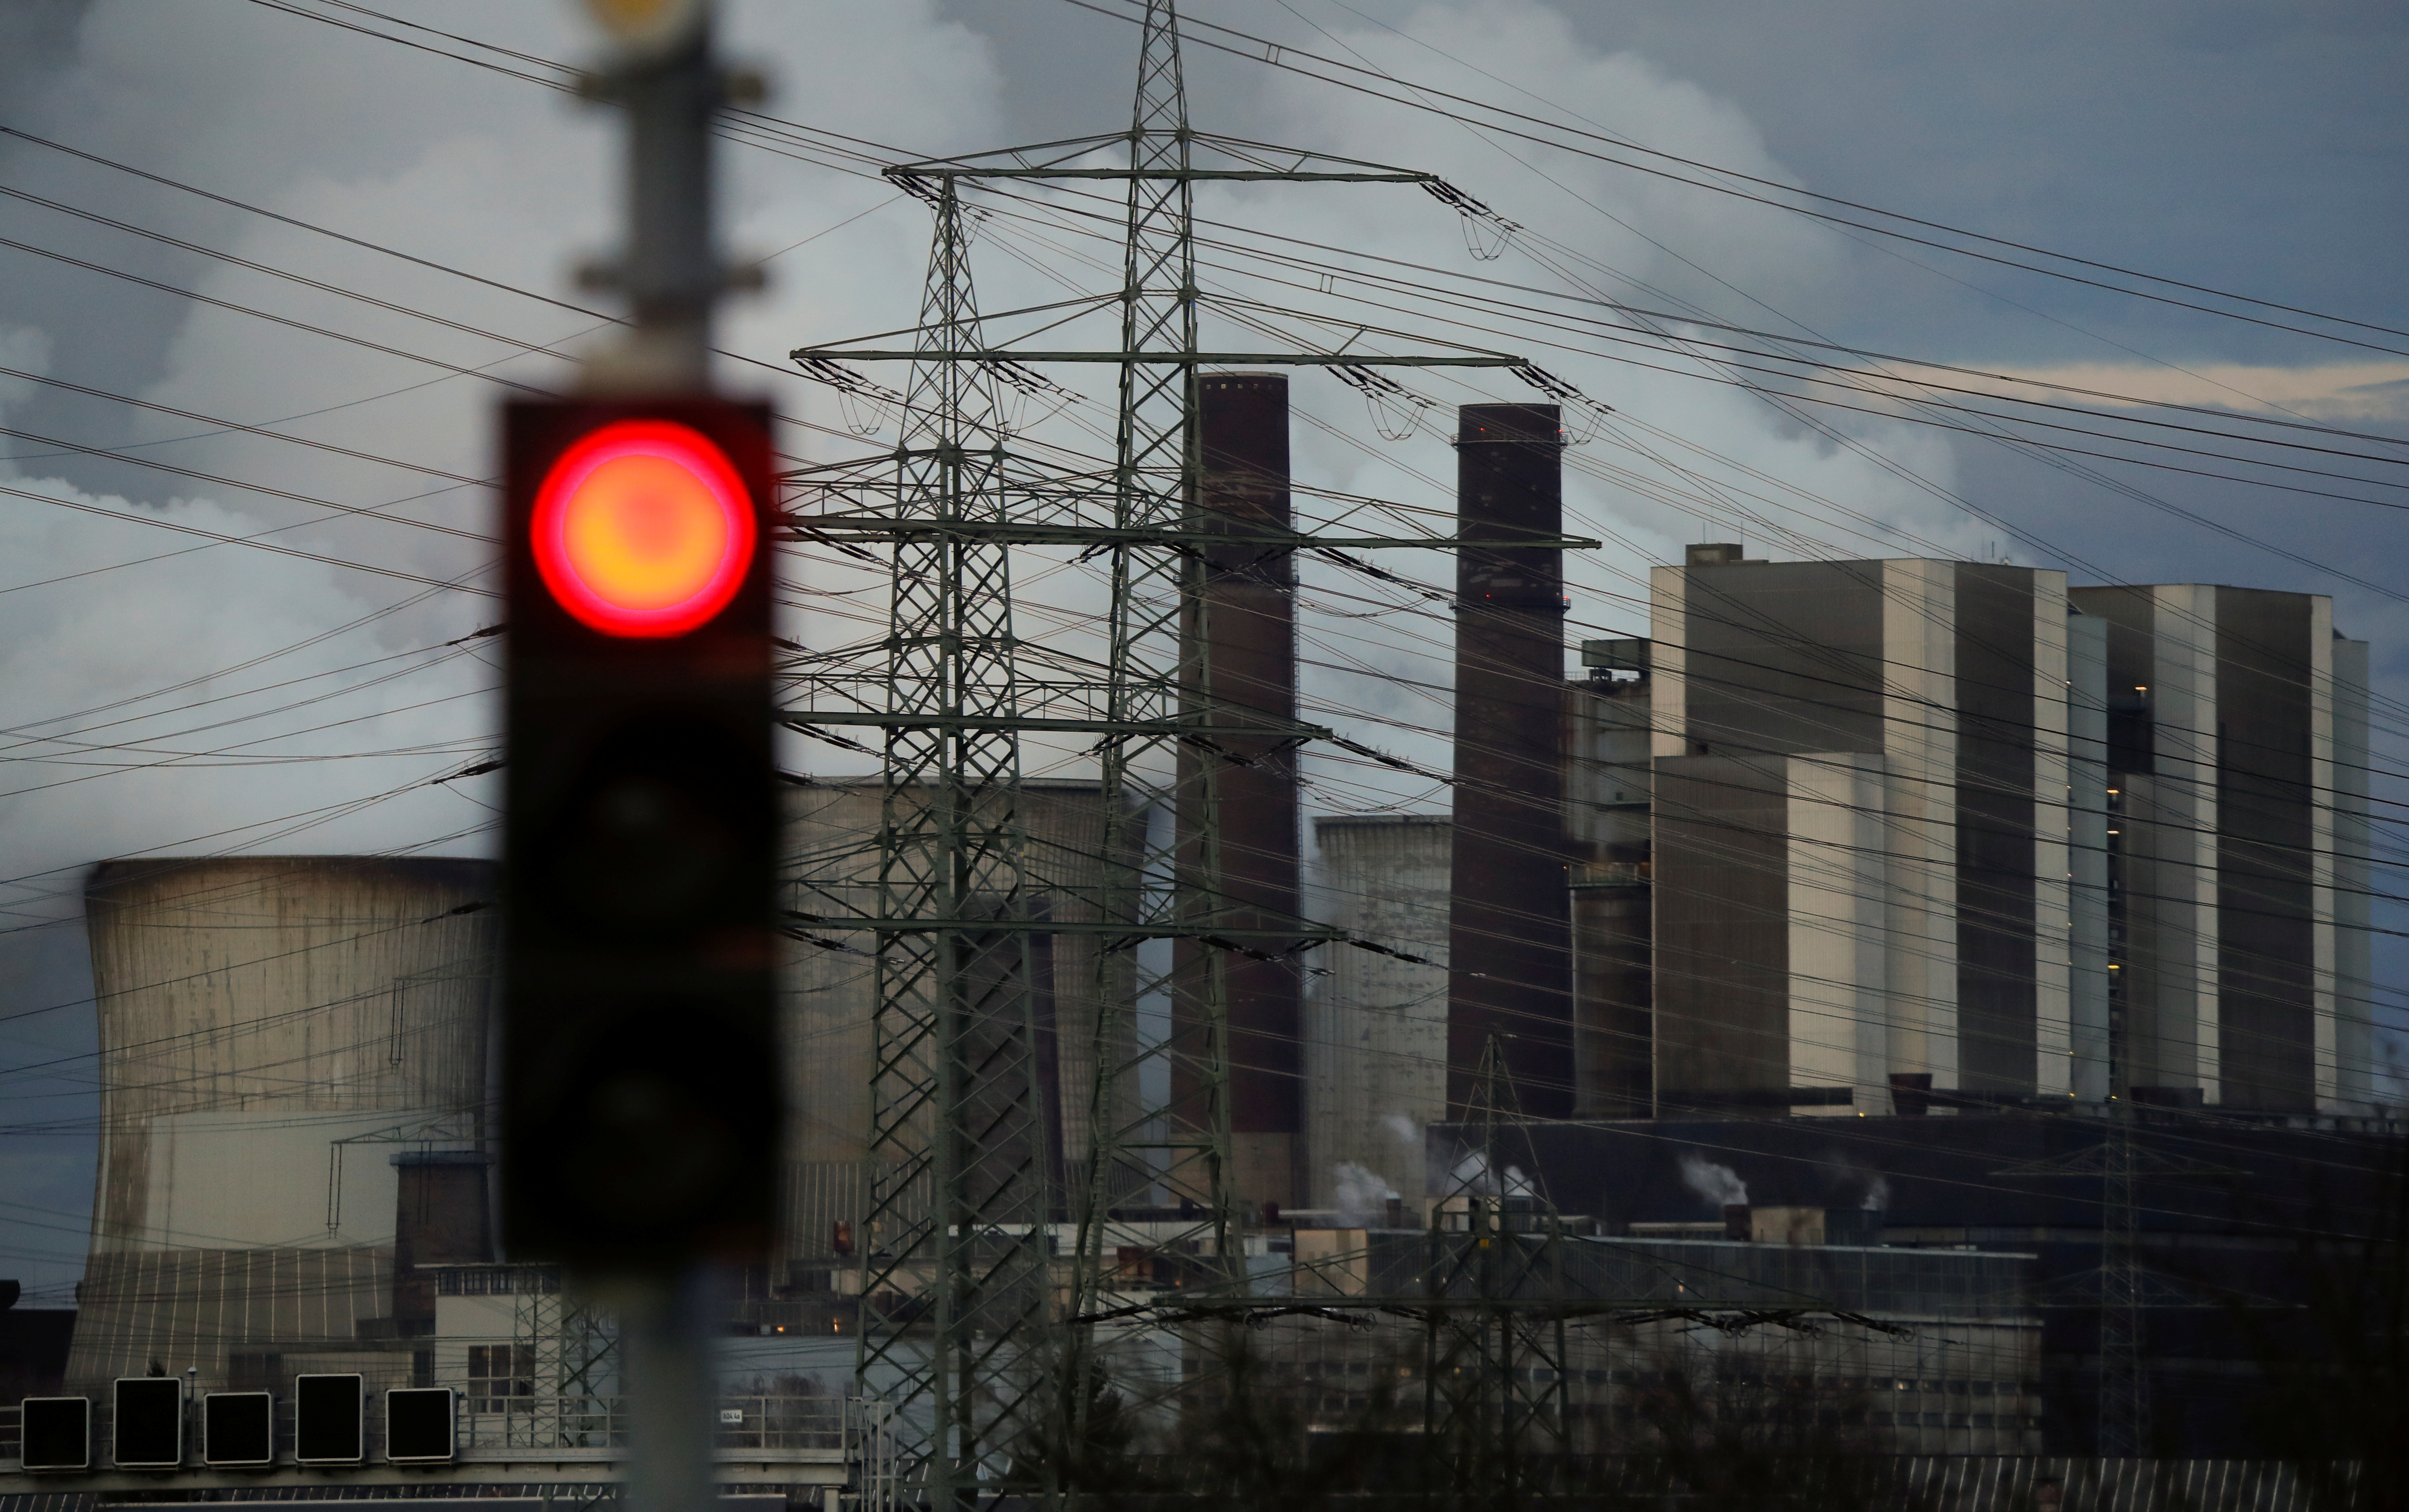 A traffic light signals red in front of the Weisweiler brown coal power plant of German energy supplier RWE, in Weisweiler near Aachen, Germany March 12, 2018.      REUTERS/Wolfgang Rattay - RC1504408190